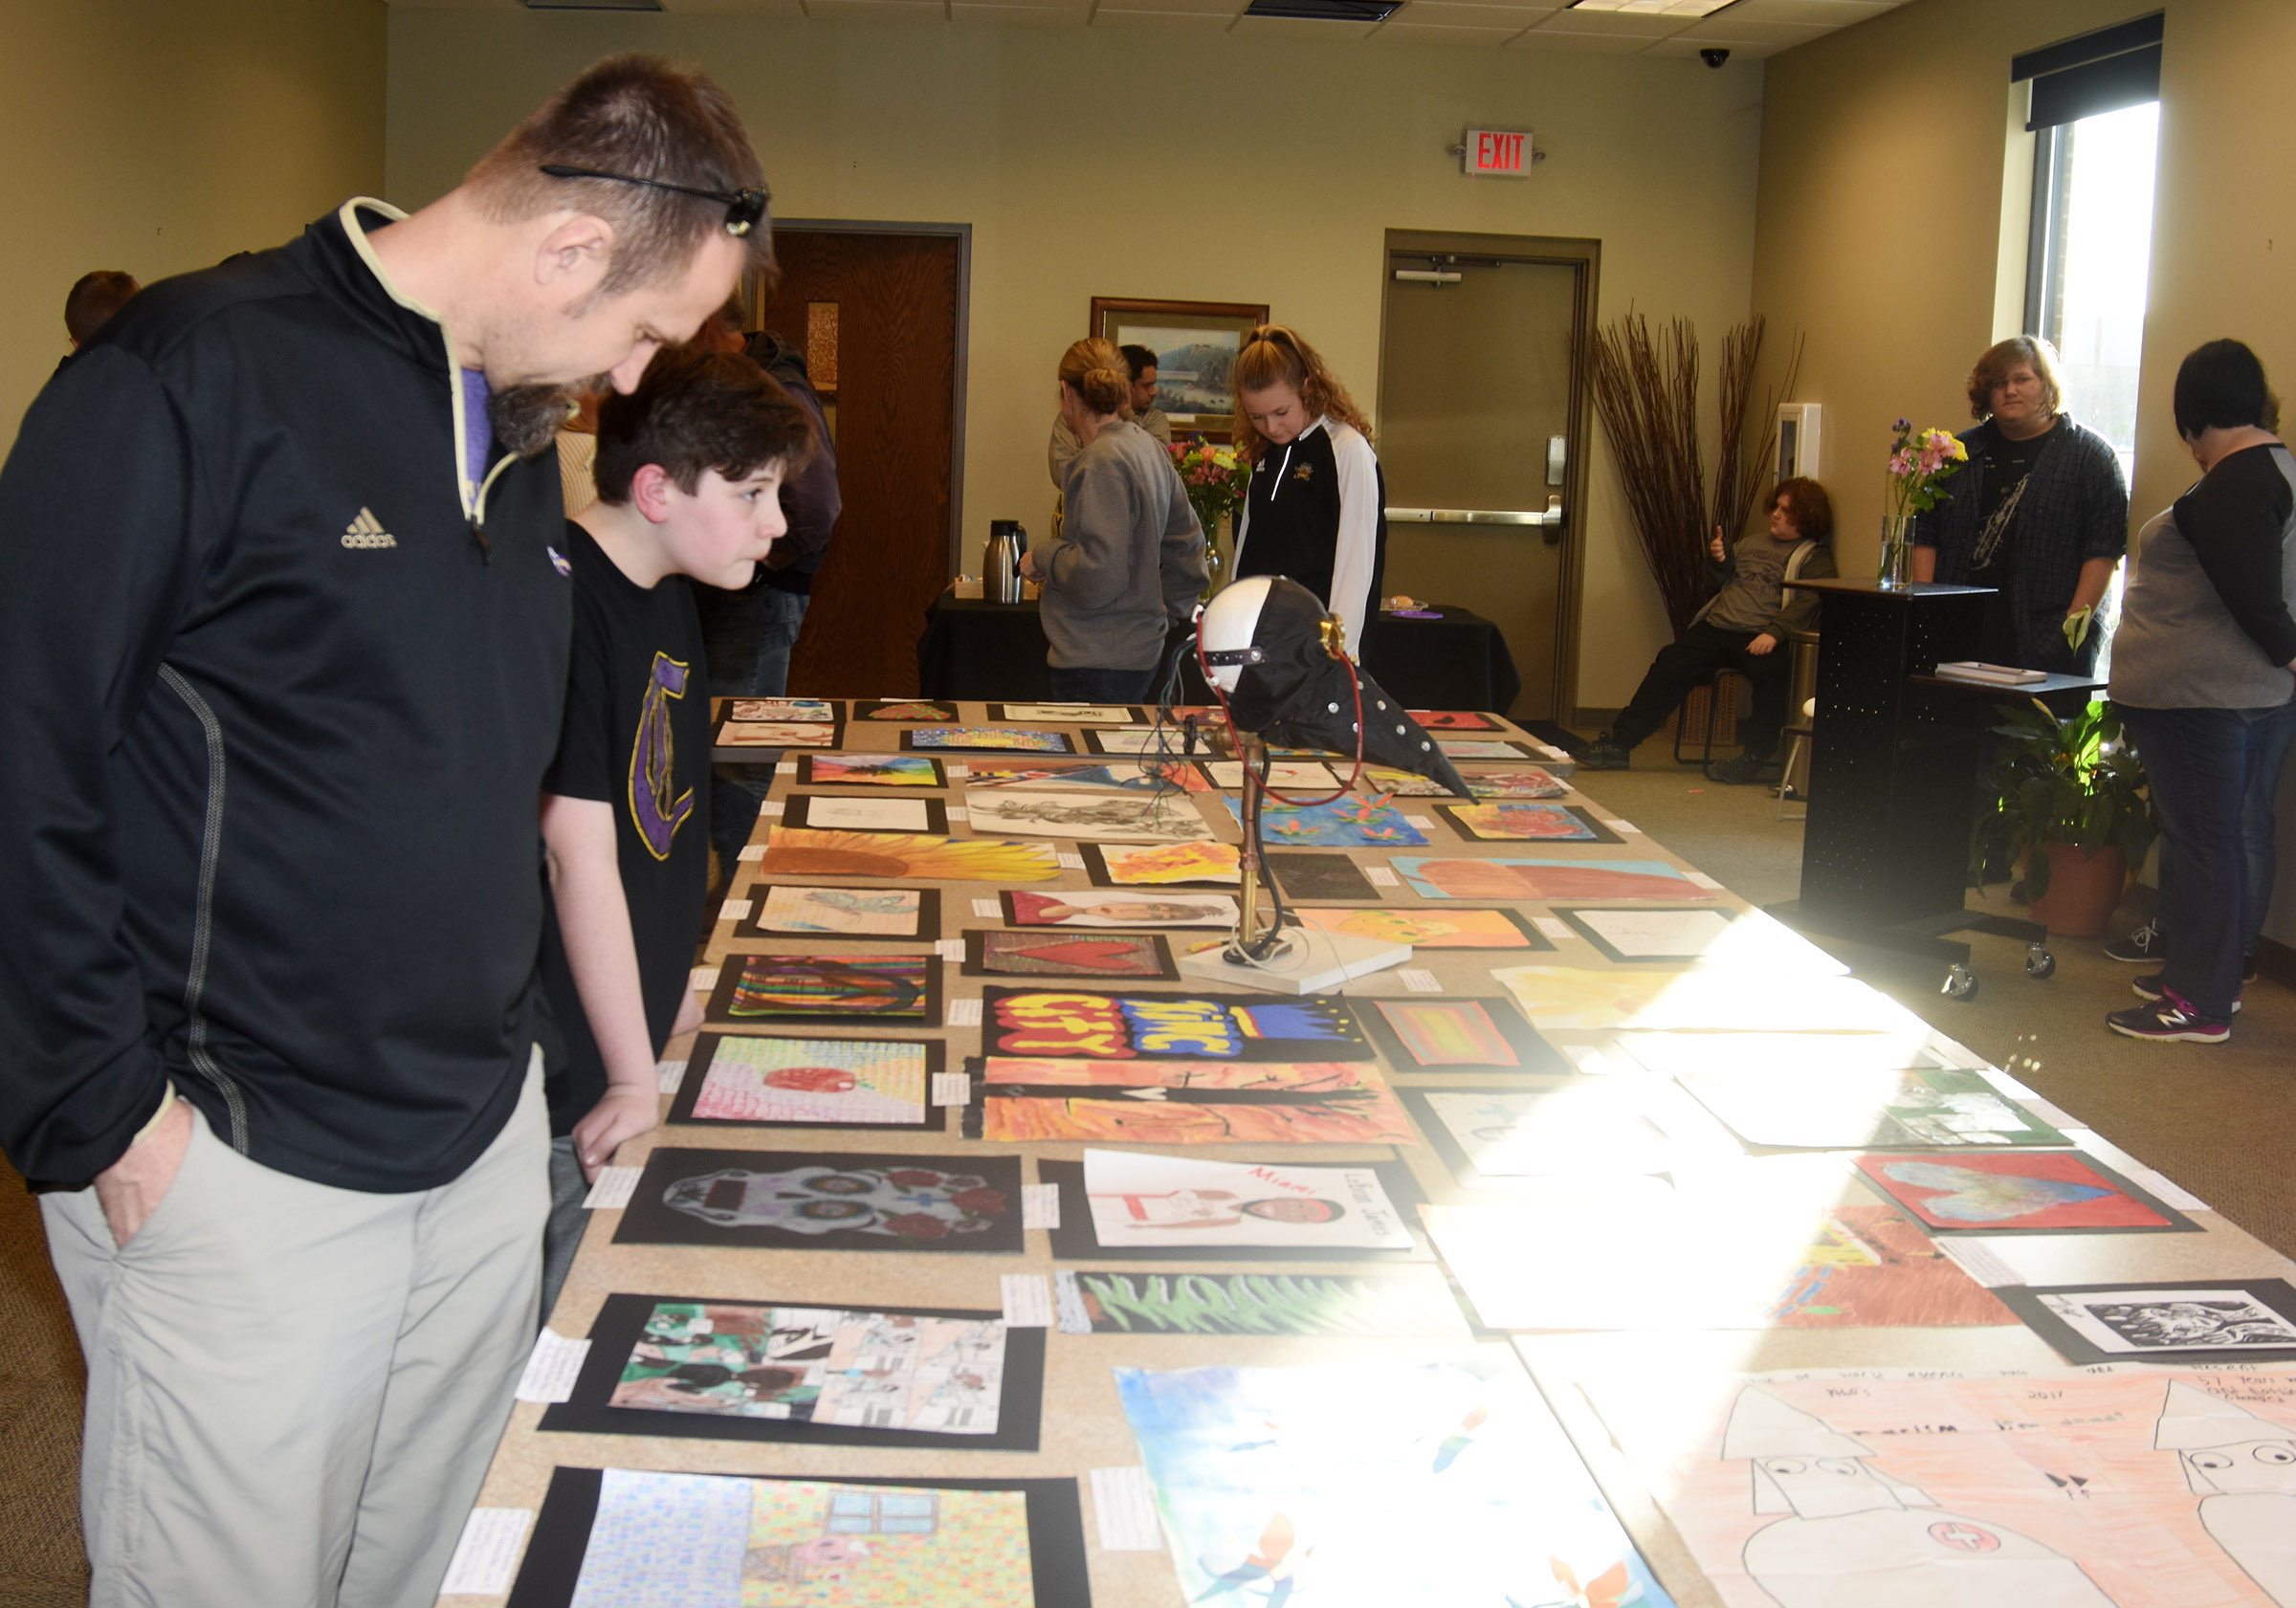 CHS Exceptional Child Educator Steve Doss looks at artwork.